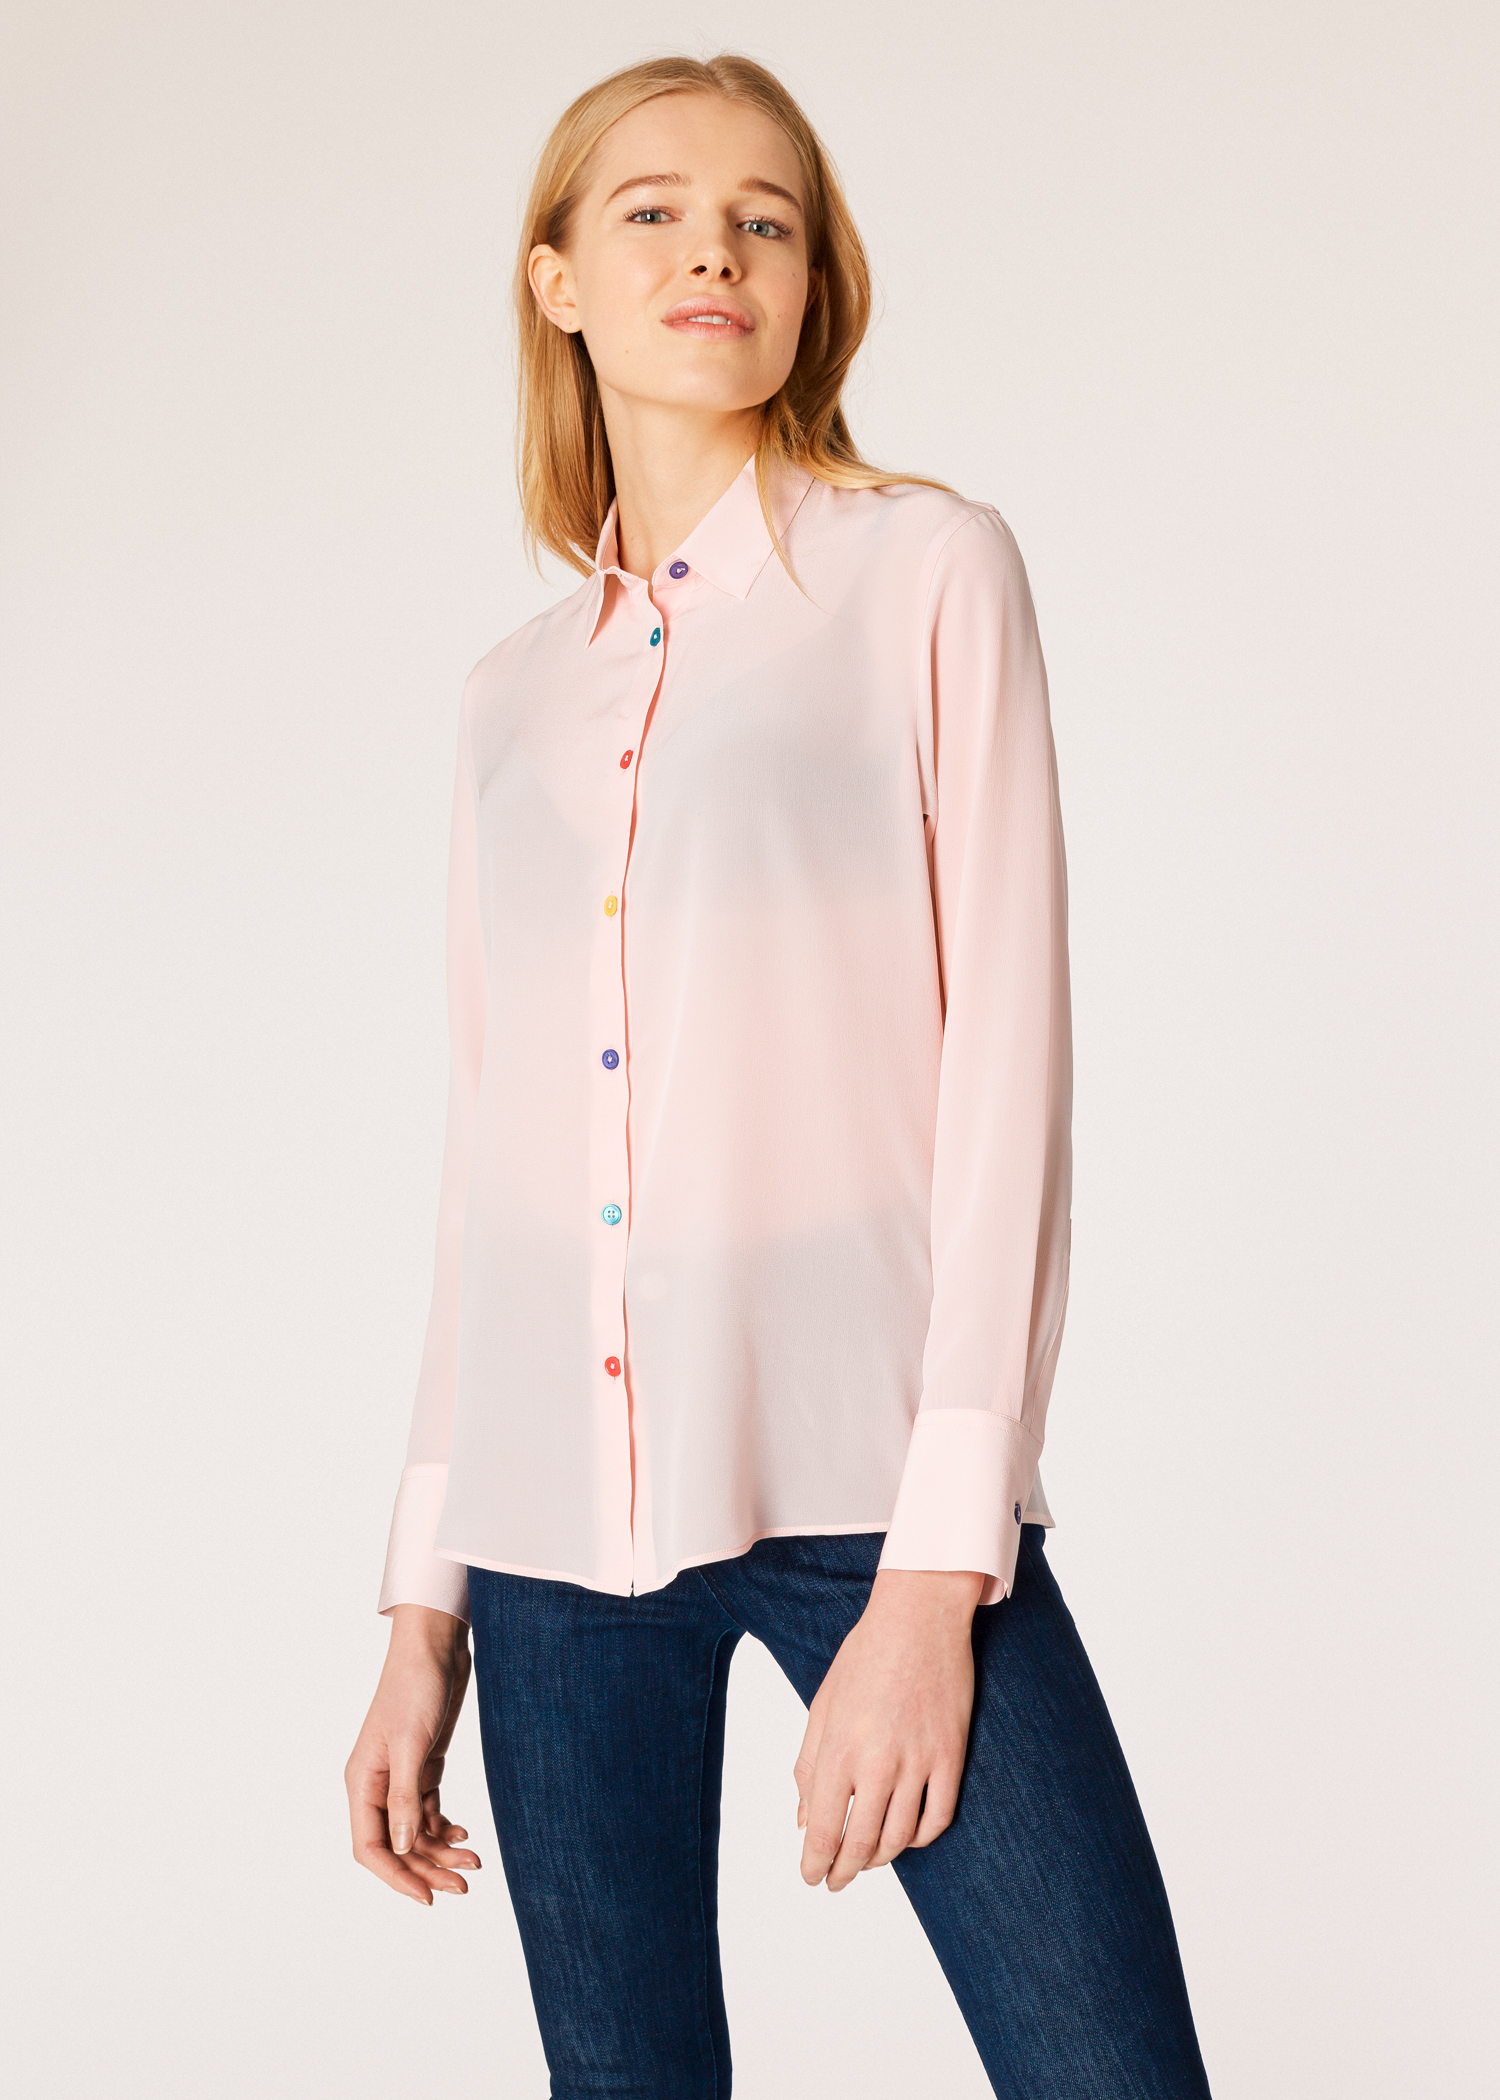 c2c6a238794b45 Model front close up - Women s Light Pink Silk Shirt With Multi-Coloured  Button Placket